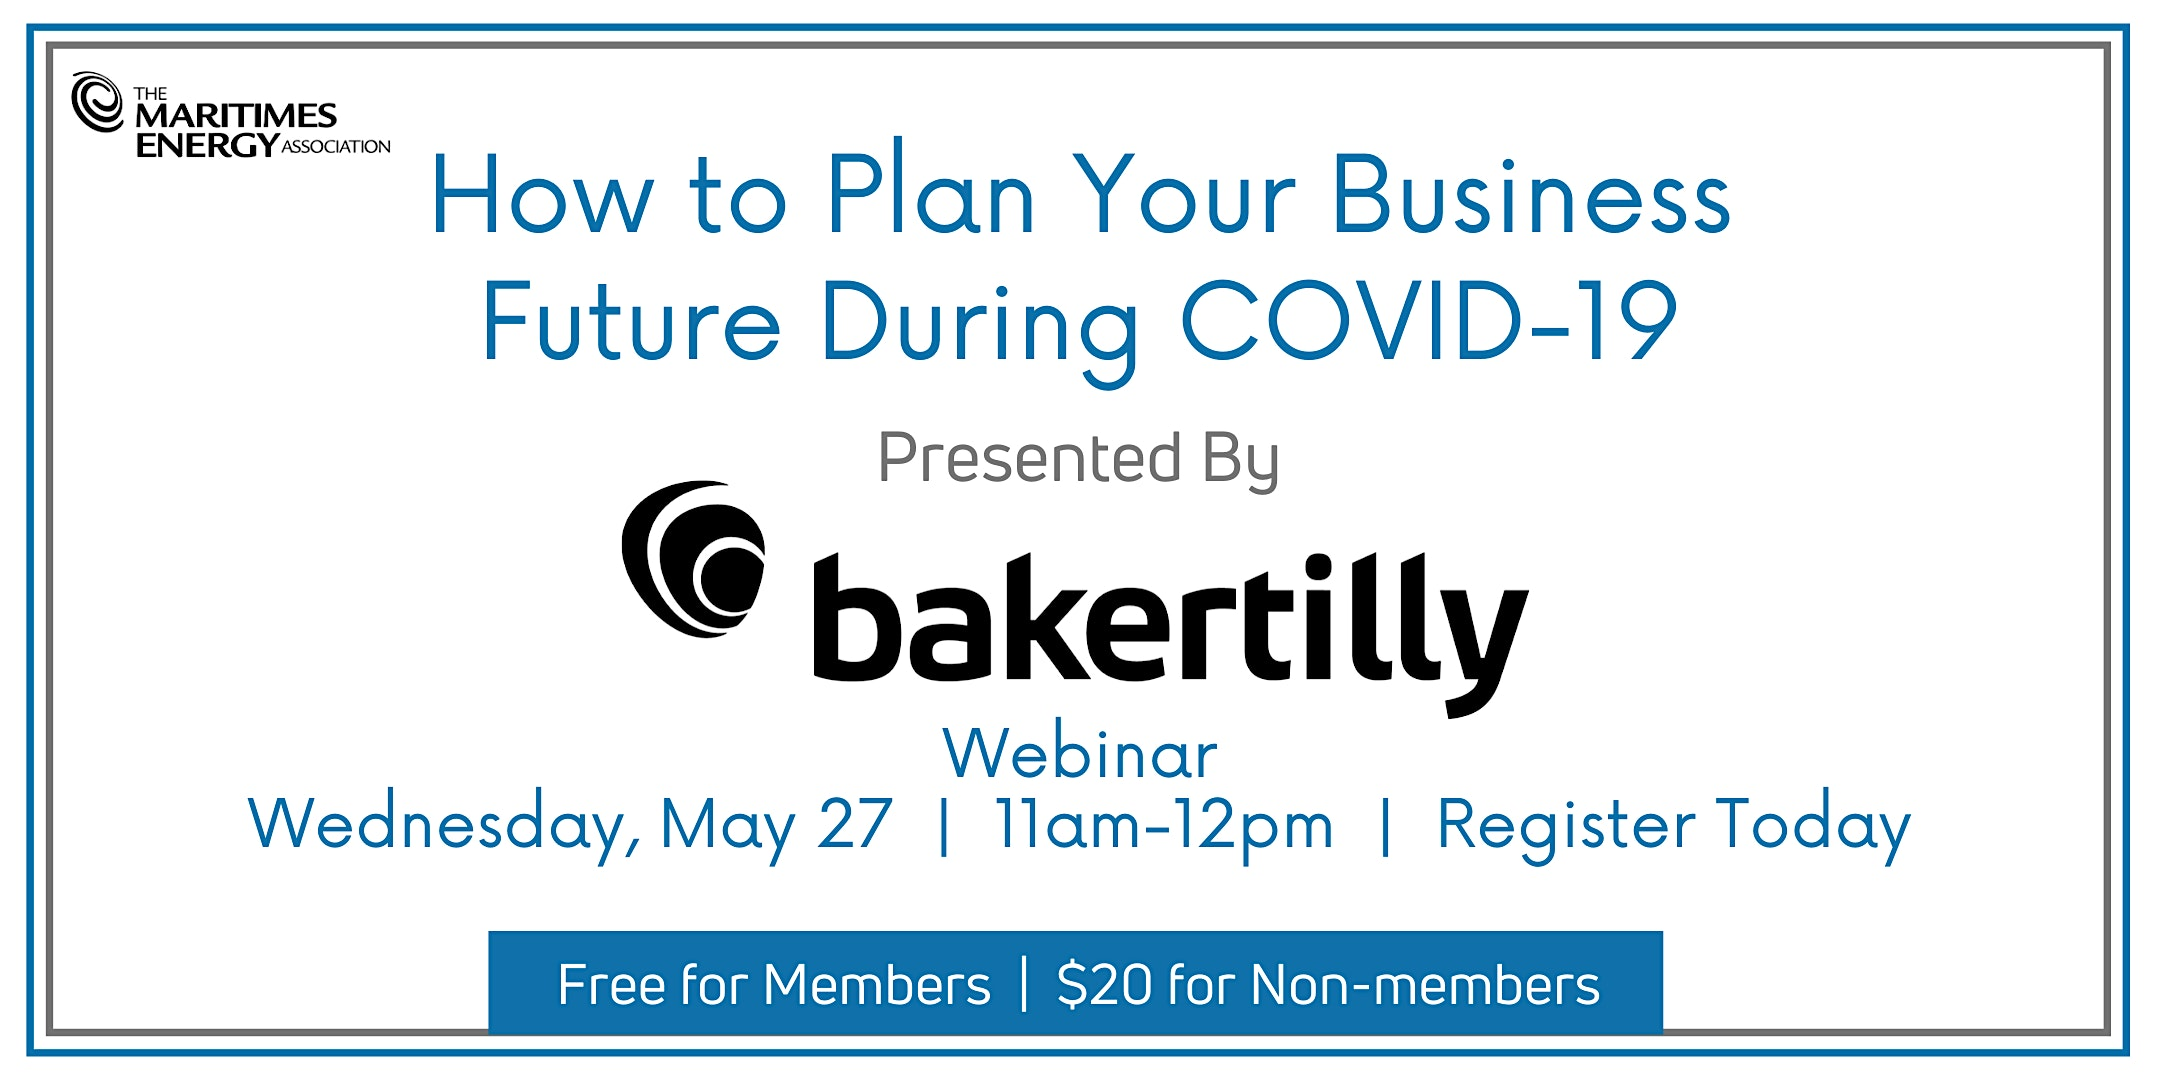 How to Plan Your Business Future During COVID-19